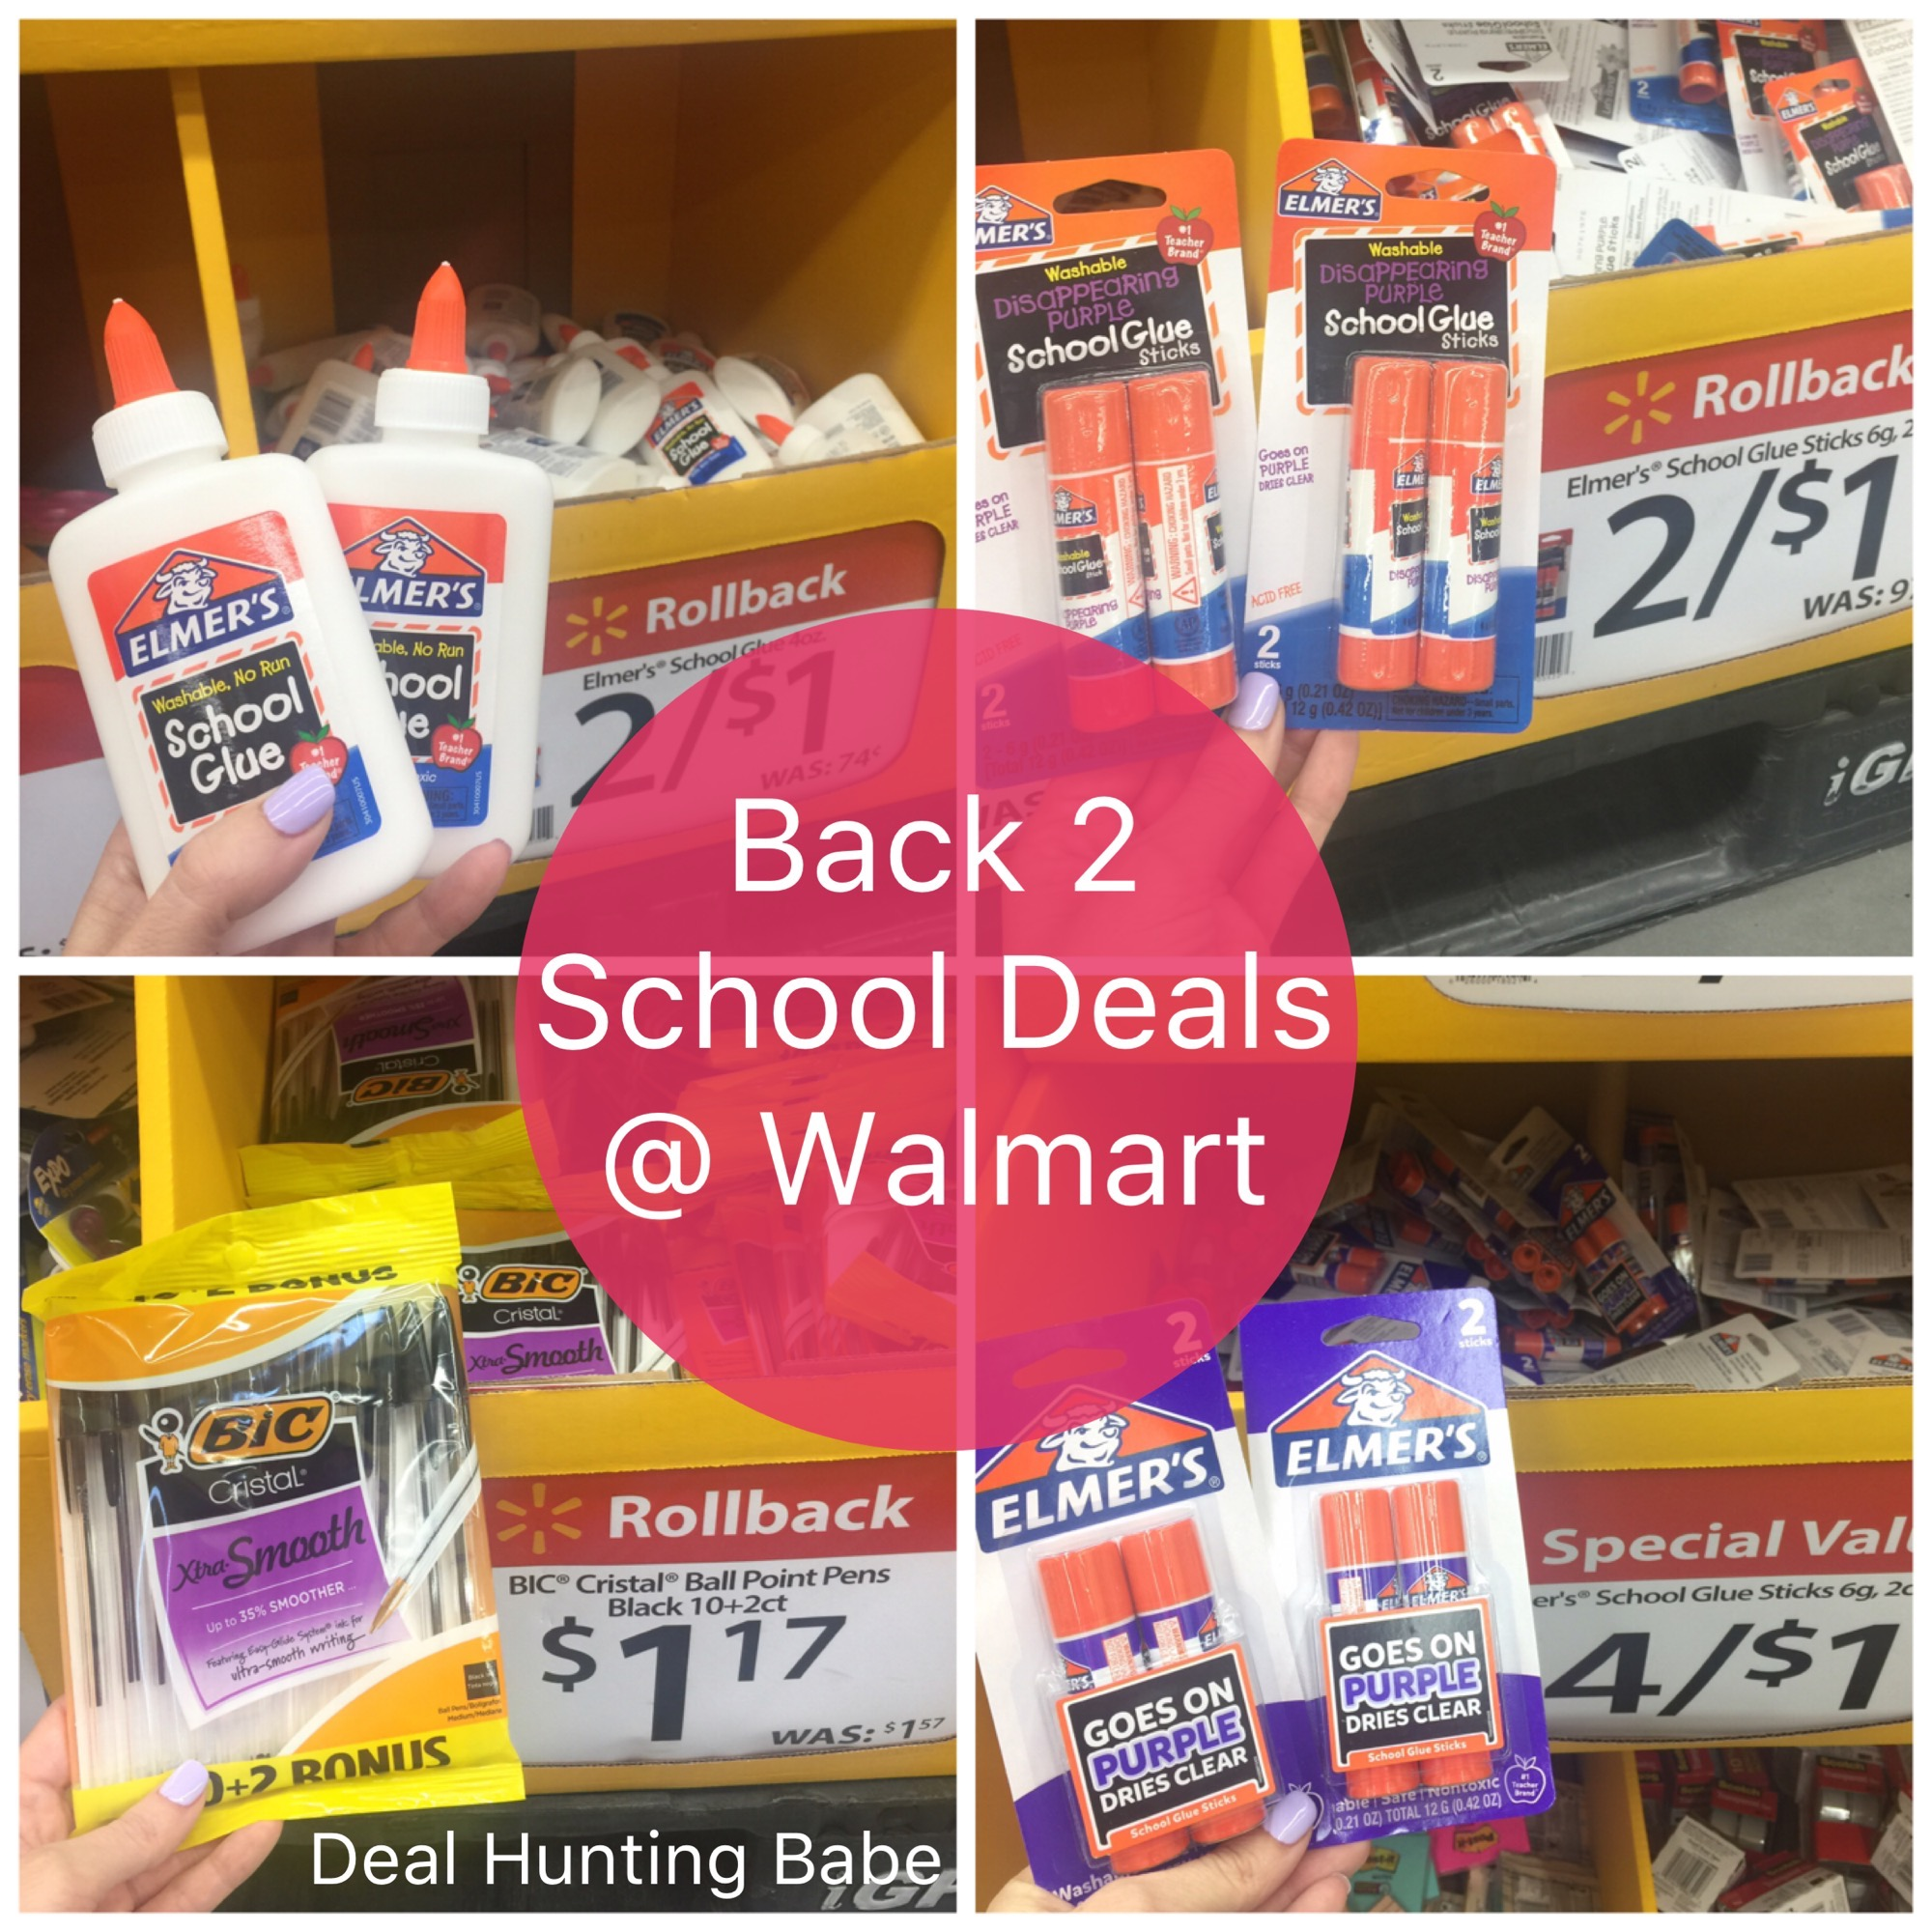 Hot Back 2 School Deals Only 0 17 Regular 0 74 Elmers School Glue Walmart Deal Hunting Babe